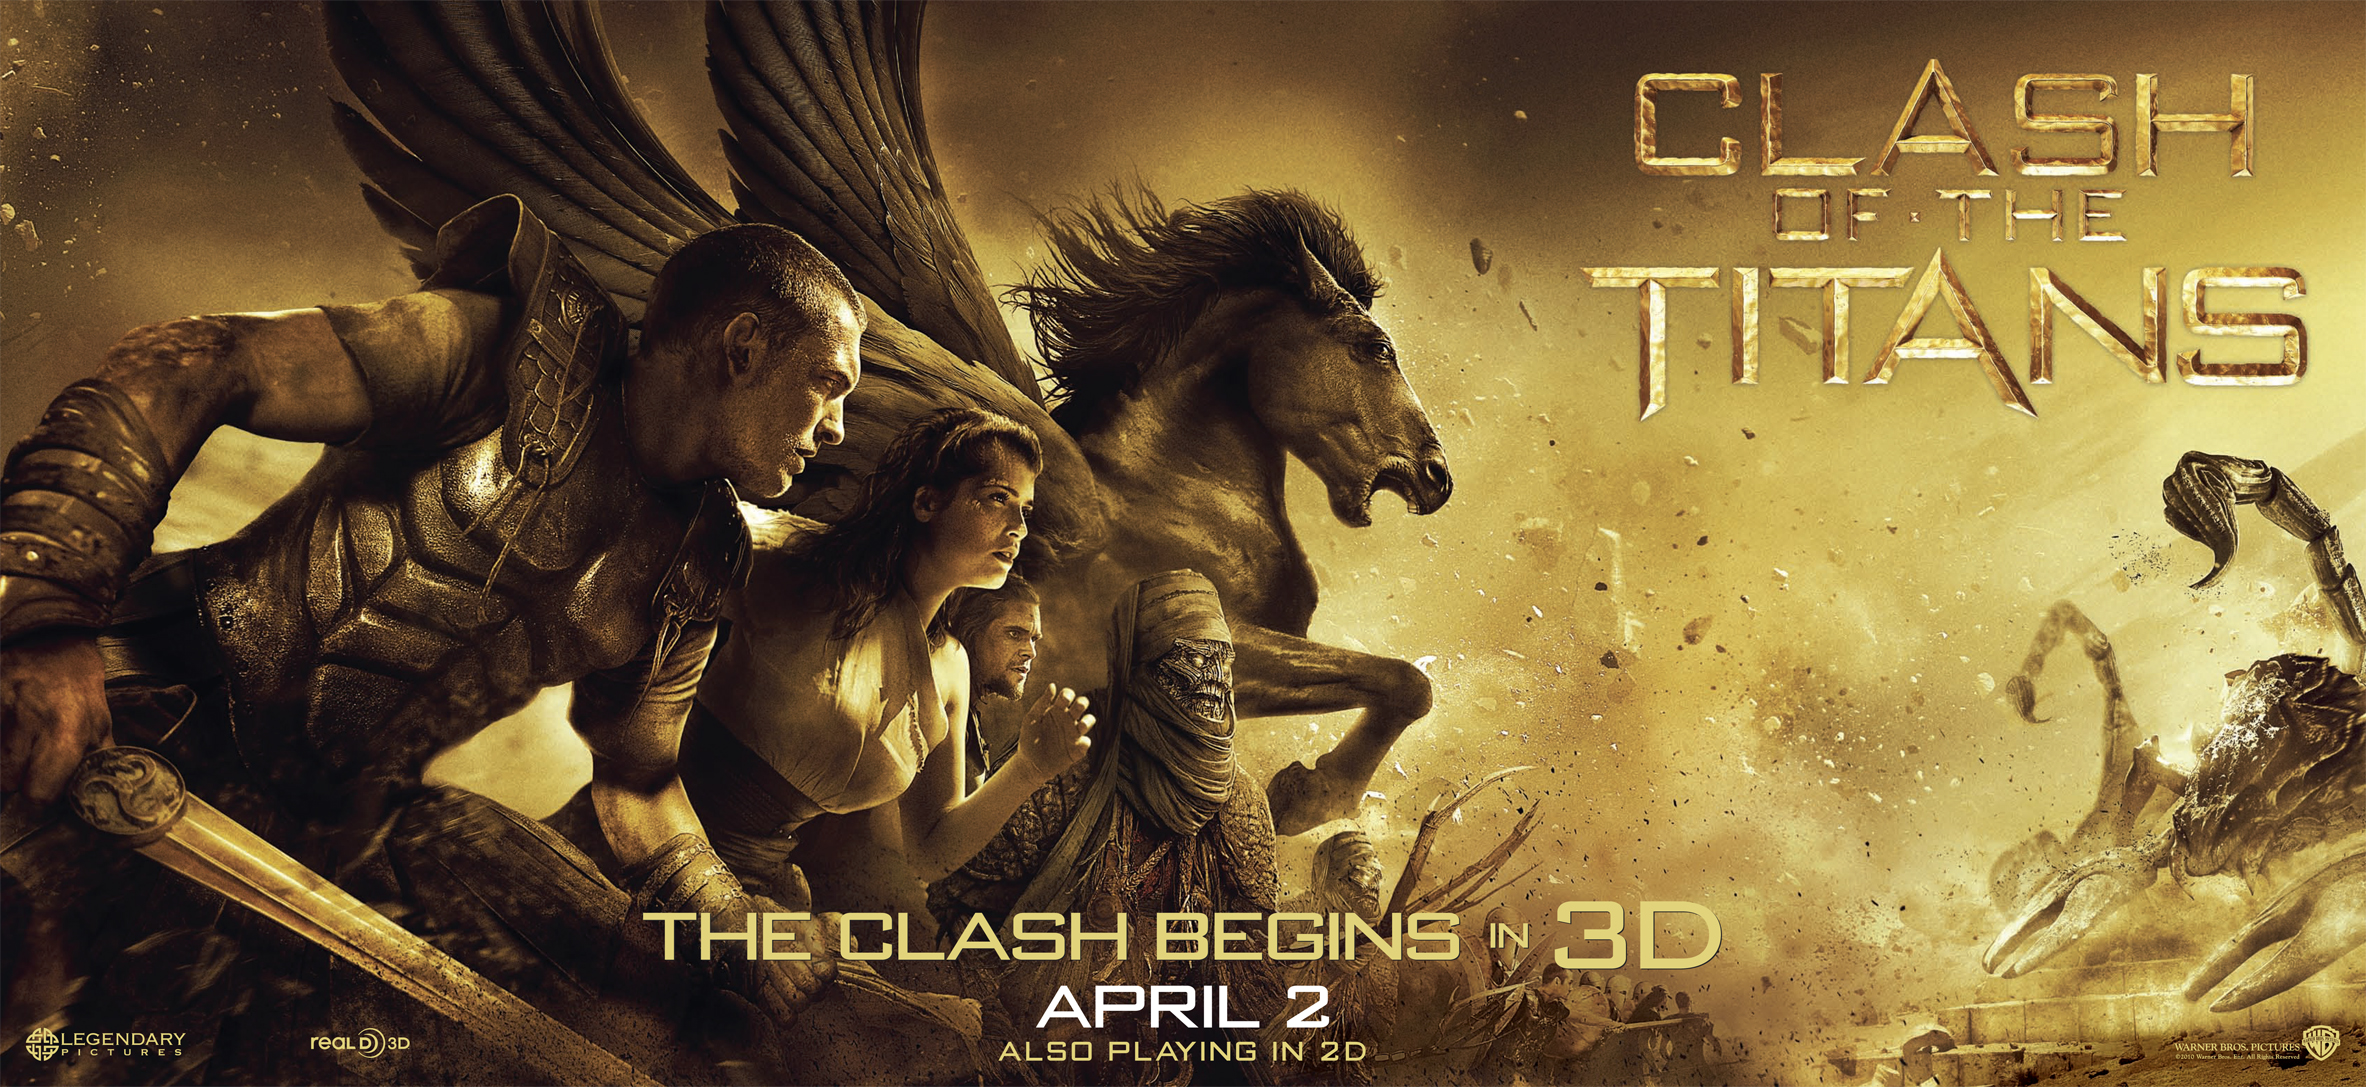 compare clash of titans movie For more about clash of the titans 3d and the clash of the titans 3d blu-ray release warner brothers' german blu-ray release of clash of the titans does feature the 2d version of the movie clash of the titans announced: 313.